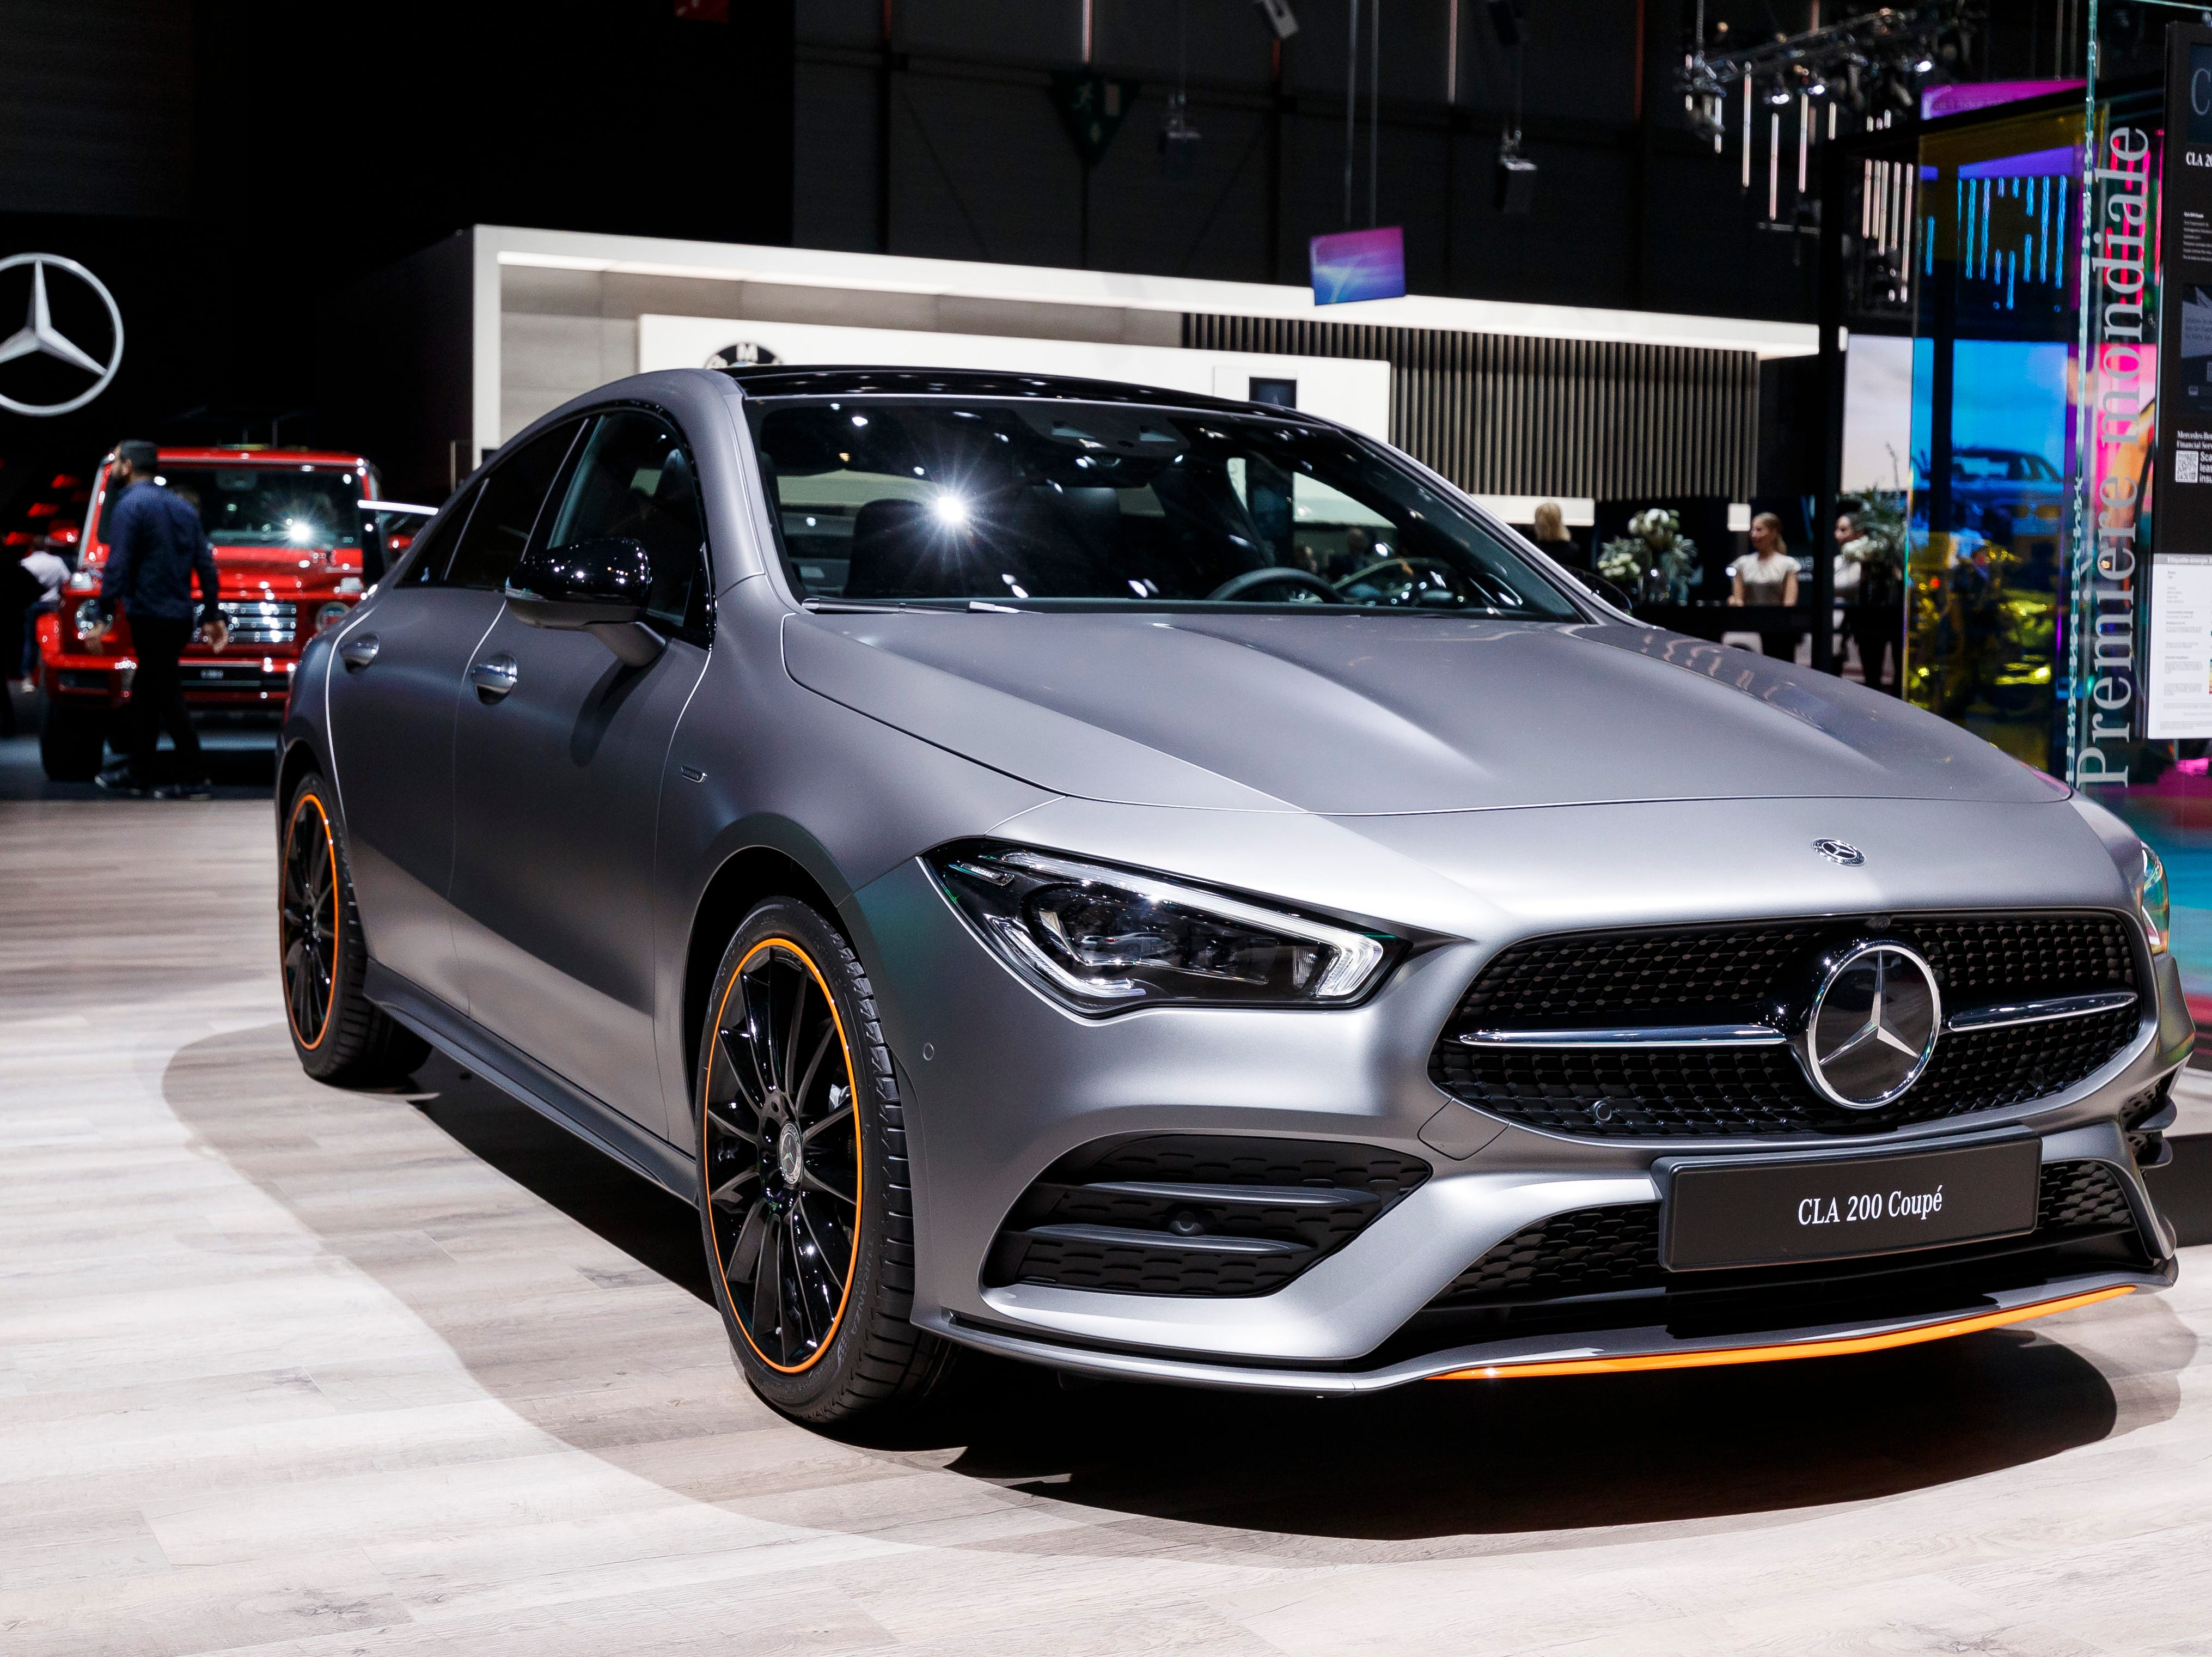 The new Mercedes-Benz GLA 200 coupe is displayed.